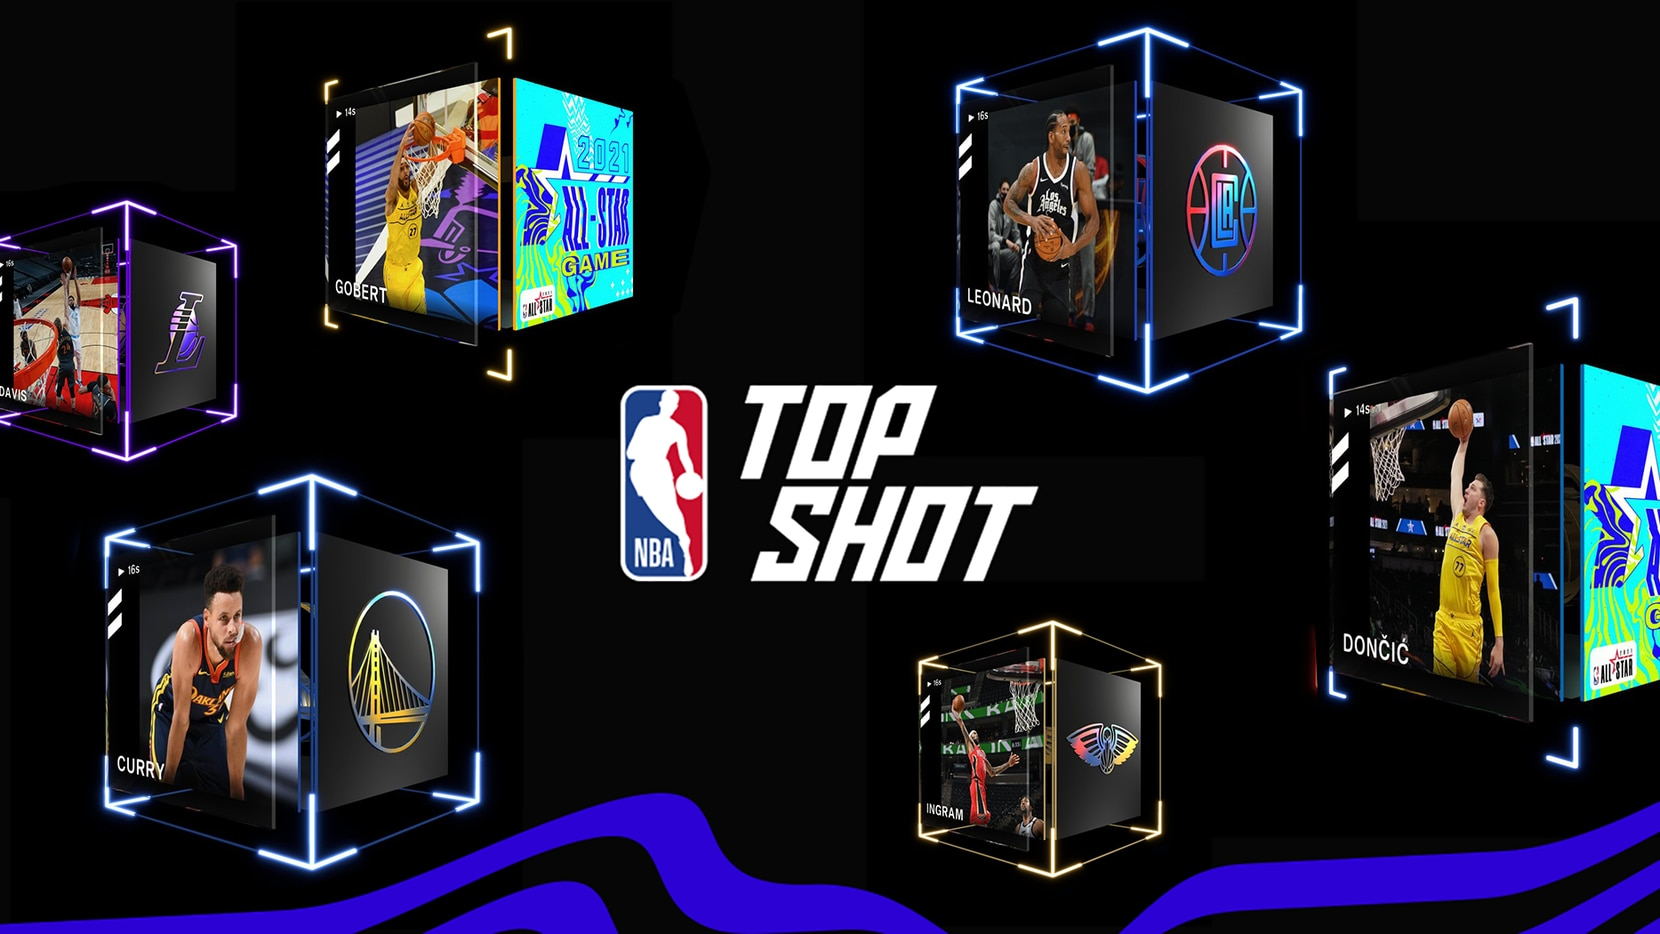 An NBA Top Shot moment featuring Luka Doncic (far right) recently sold for more than $20,000. Each Top Shot moment comes in the form of a digital cube that includes the highlight and a unique serial number that cannot be replicated or destroyed.